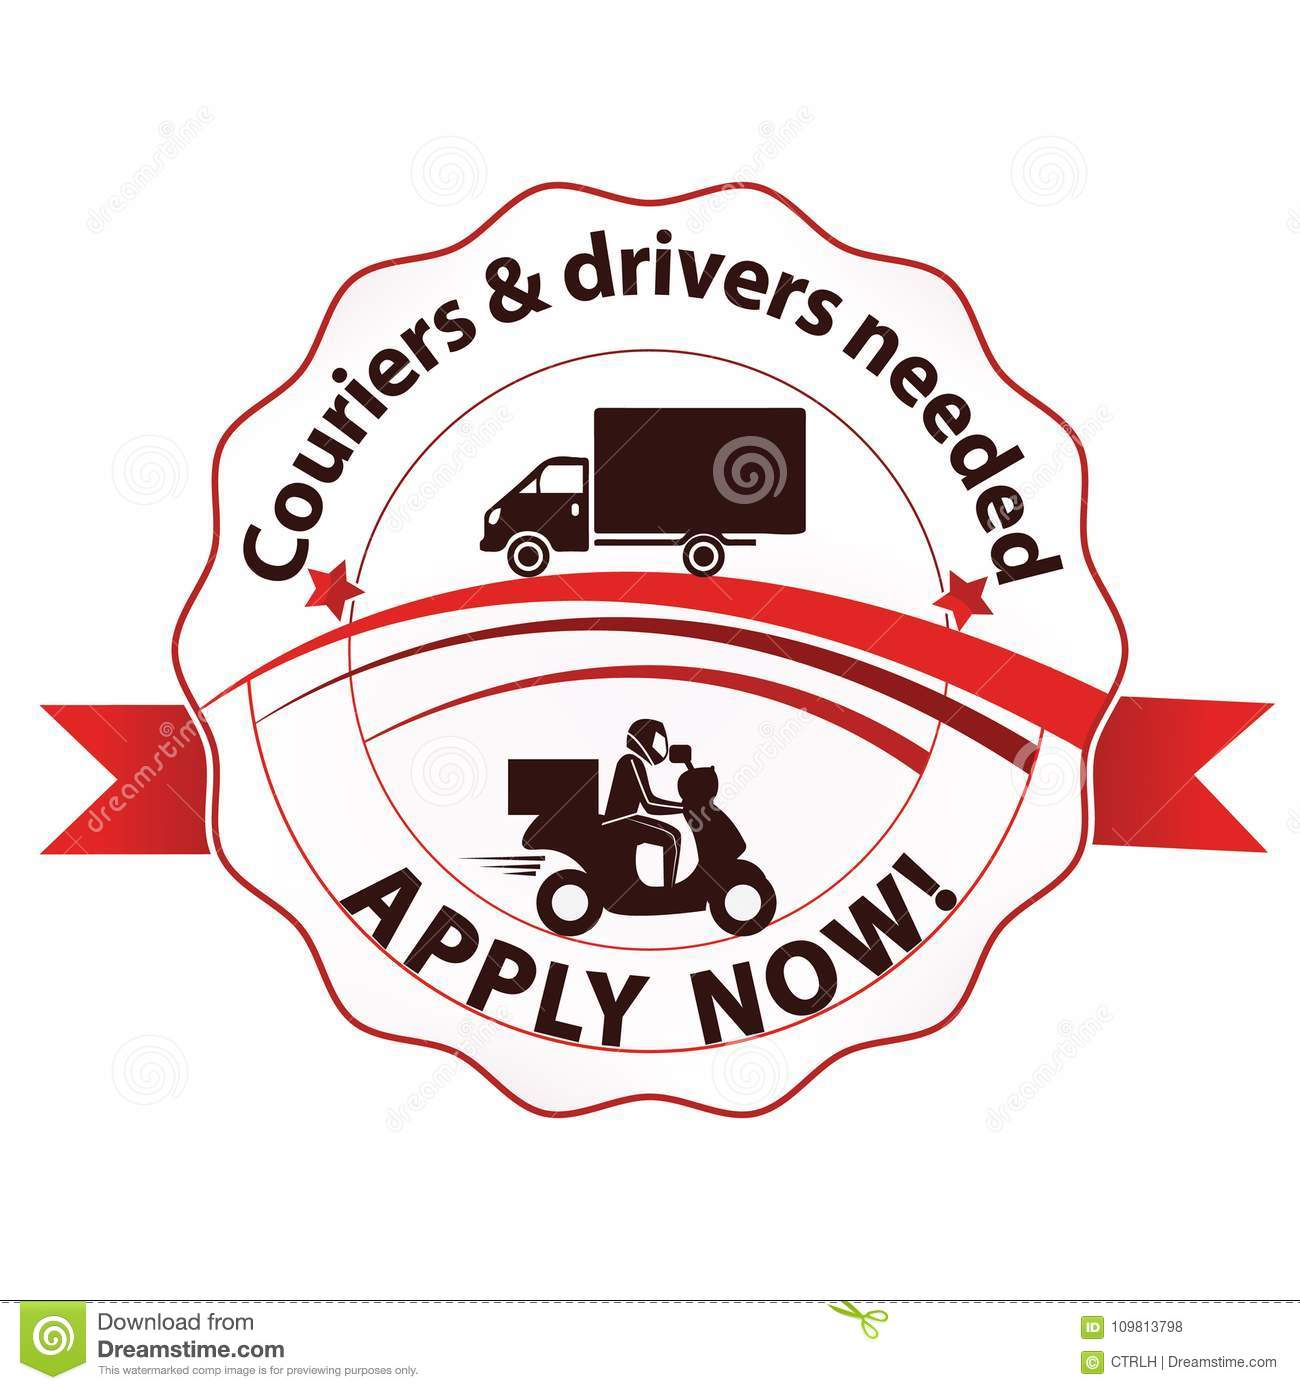 image regarding Now Hiring Sign Printable titled We Are Choosing, Couriers And Motorists Sought after - Printable Stamp